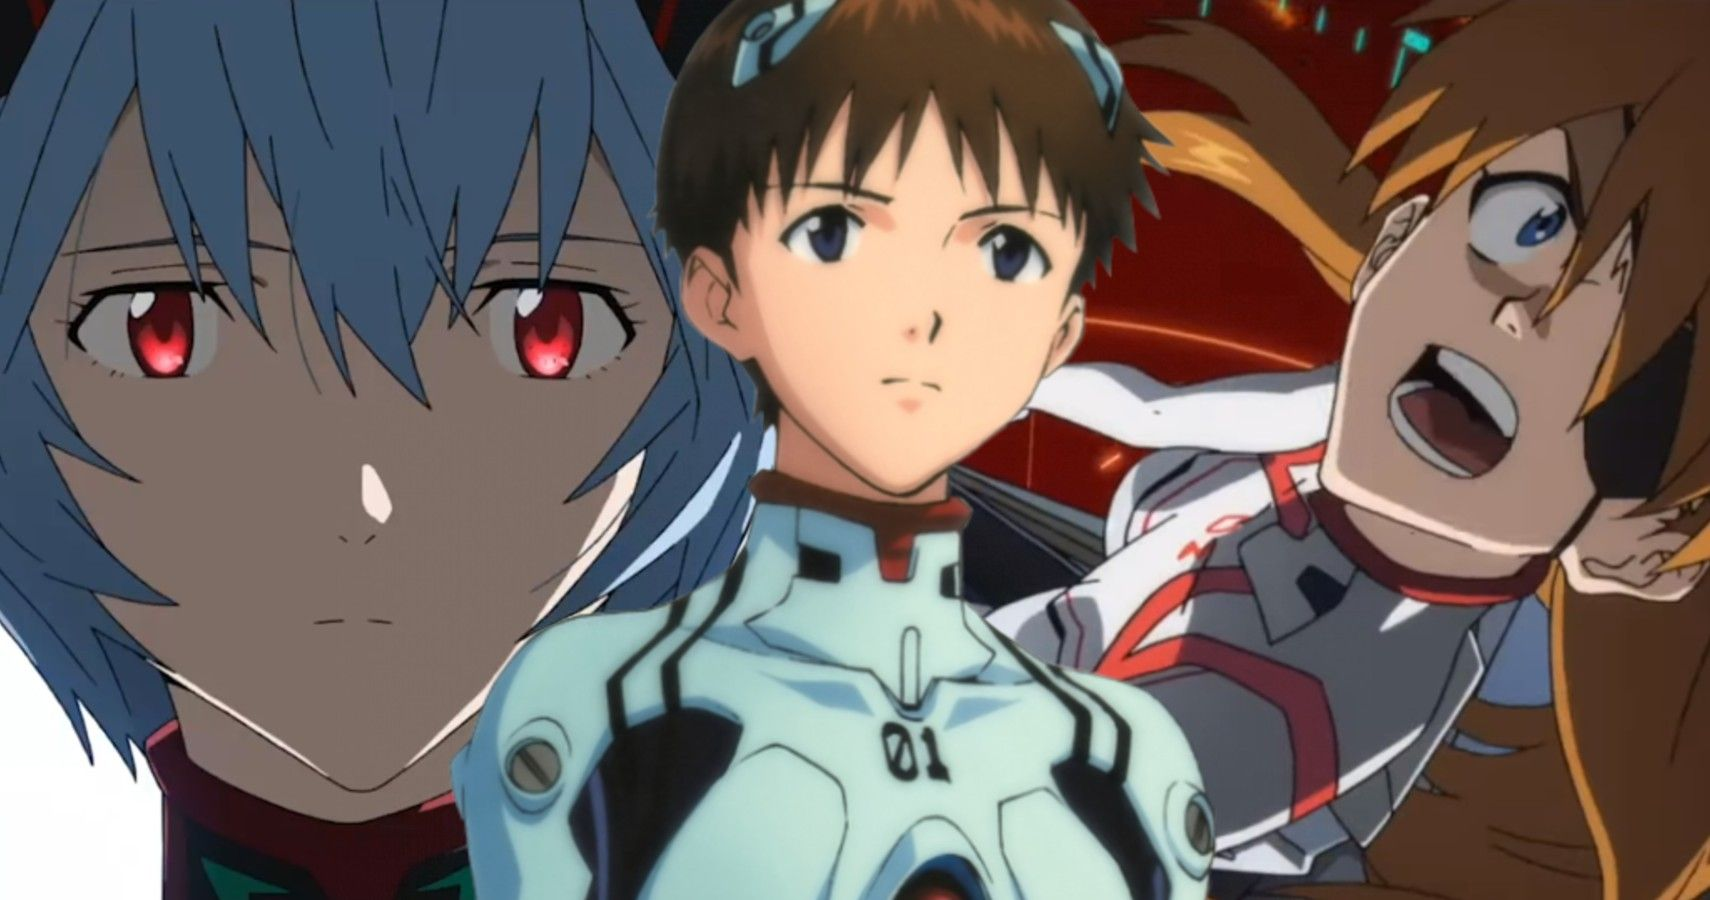 When will Evangelion 4.0 Release Date? Plot , Cast And More